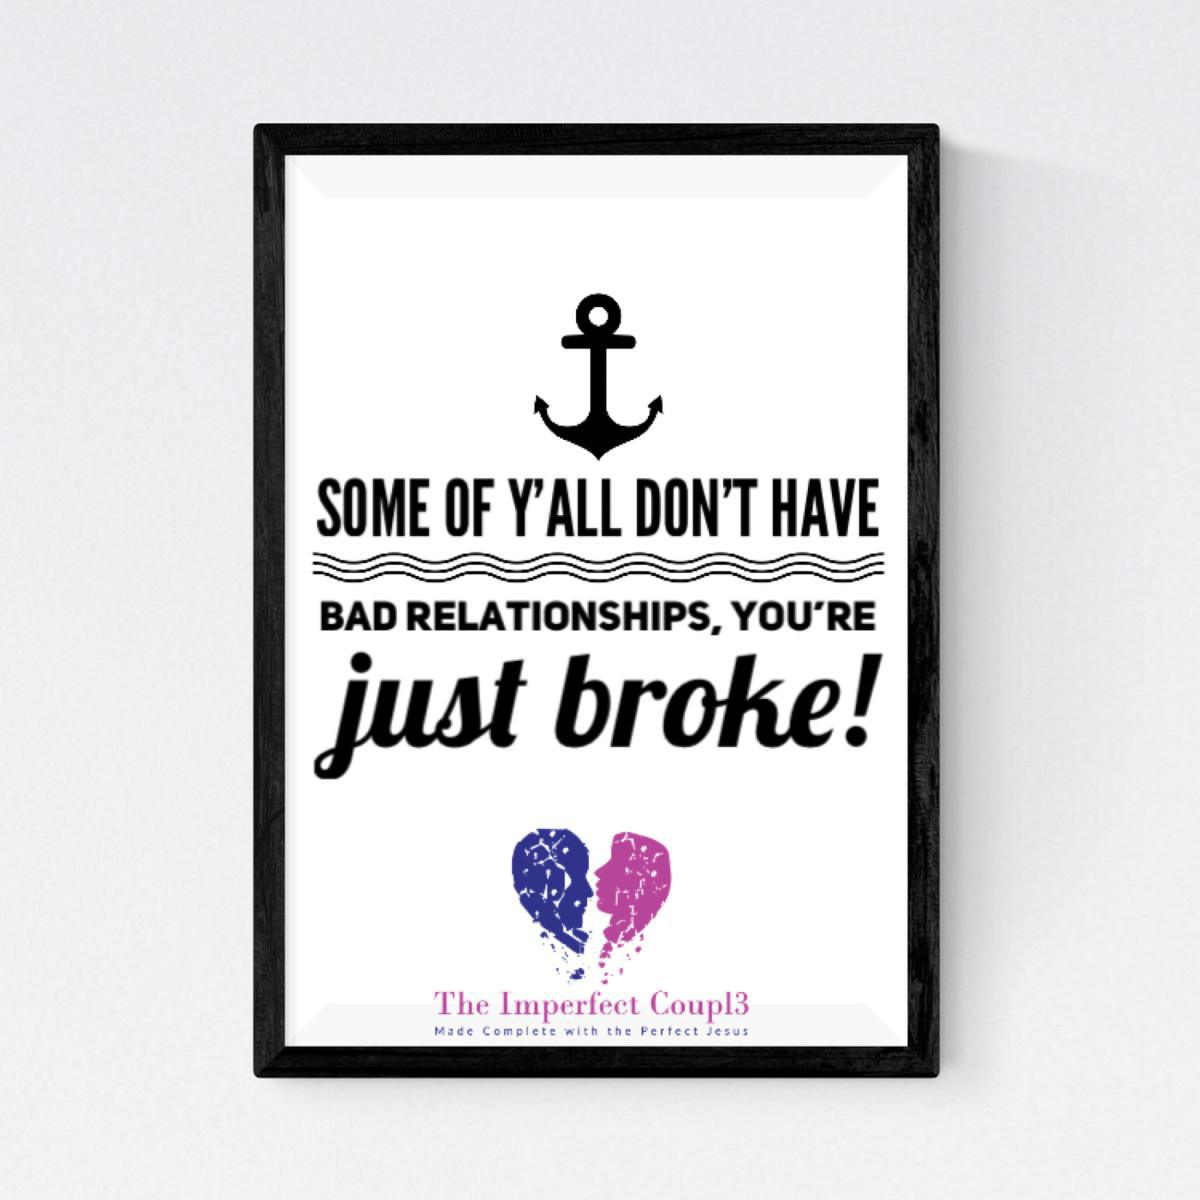 Some of y'all don't have bad relationships, you're just broke!